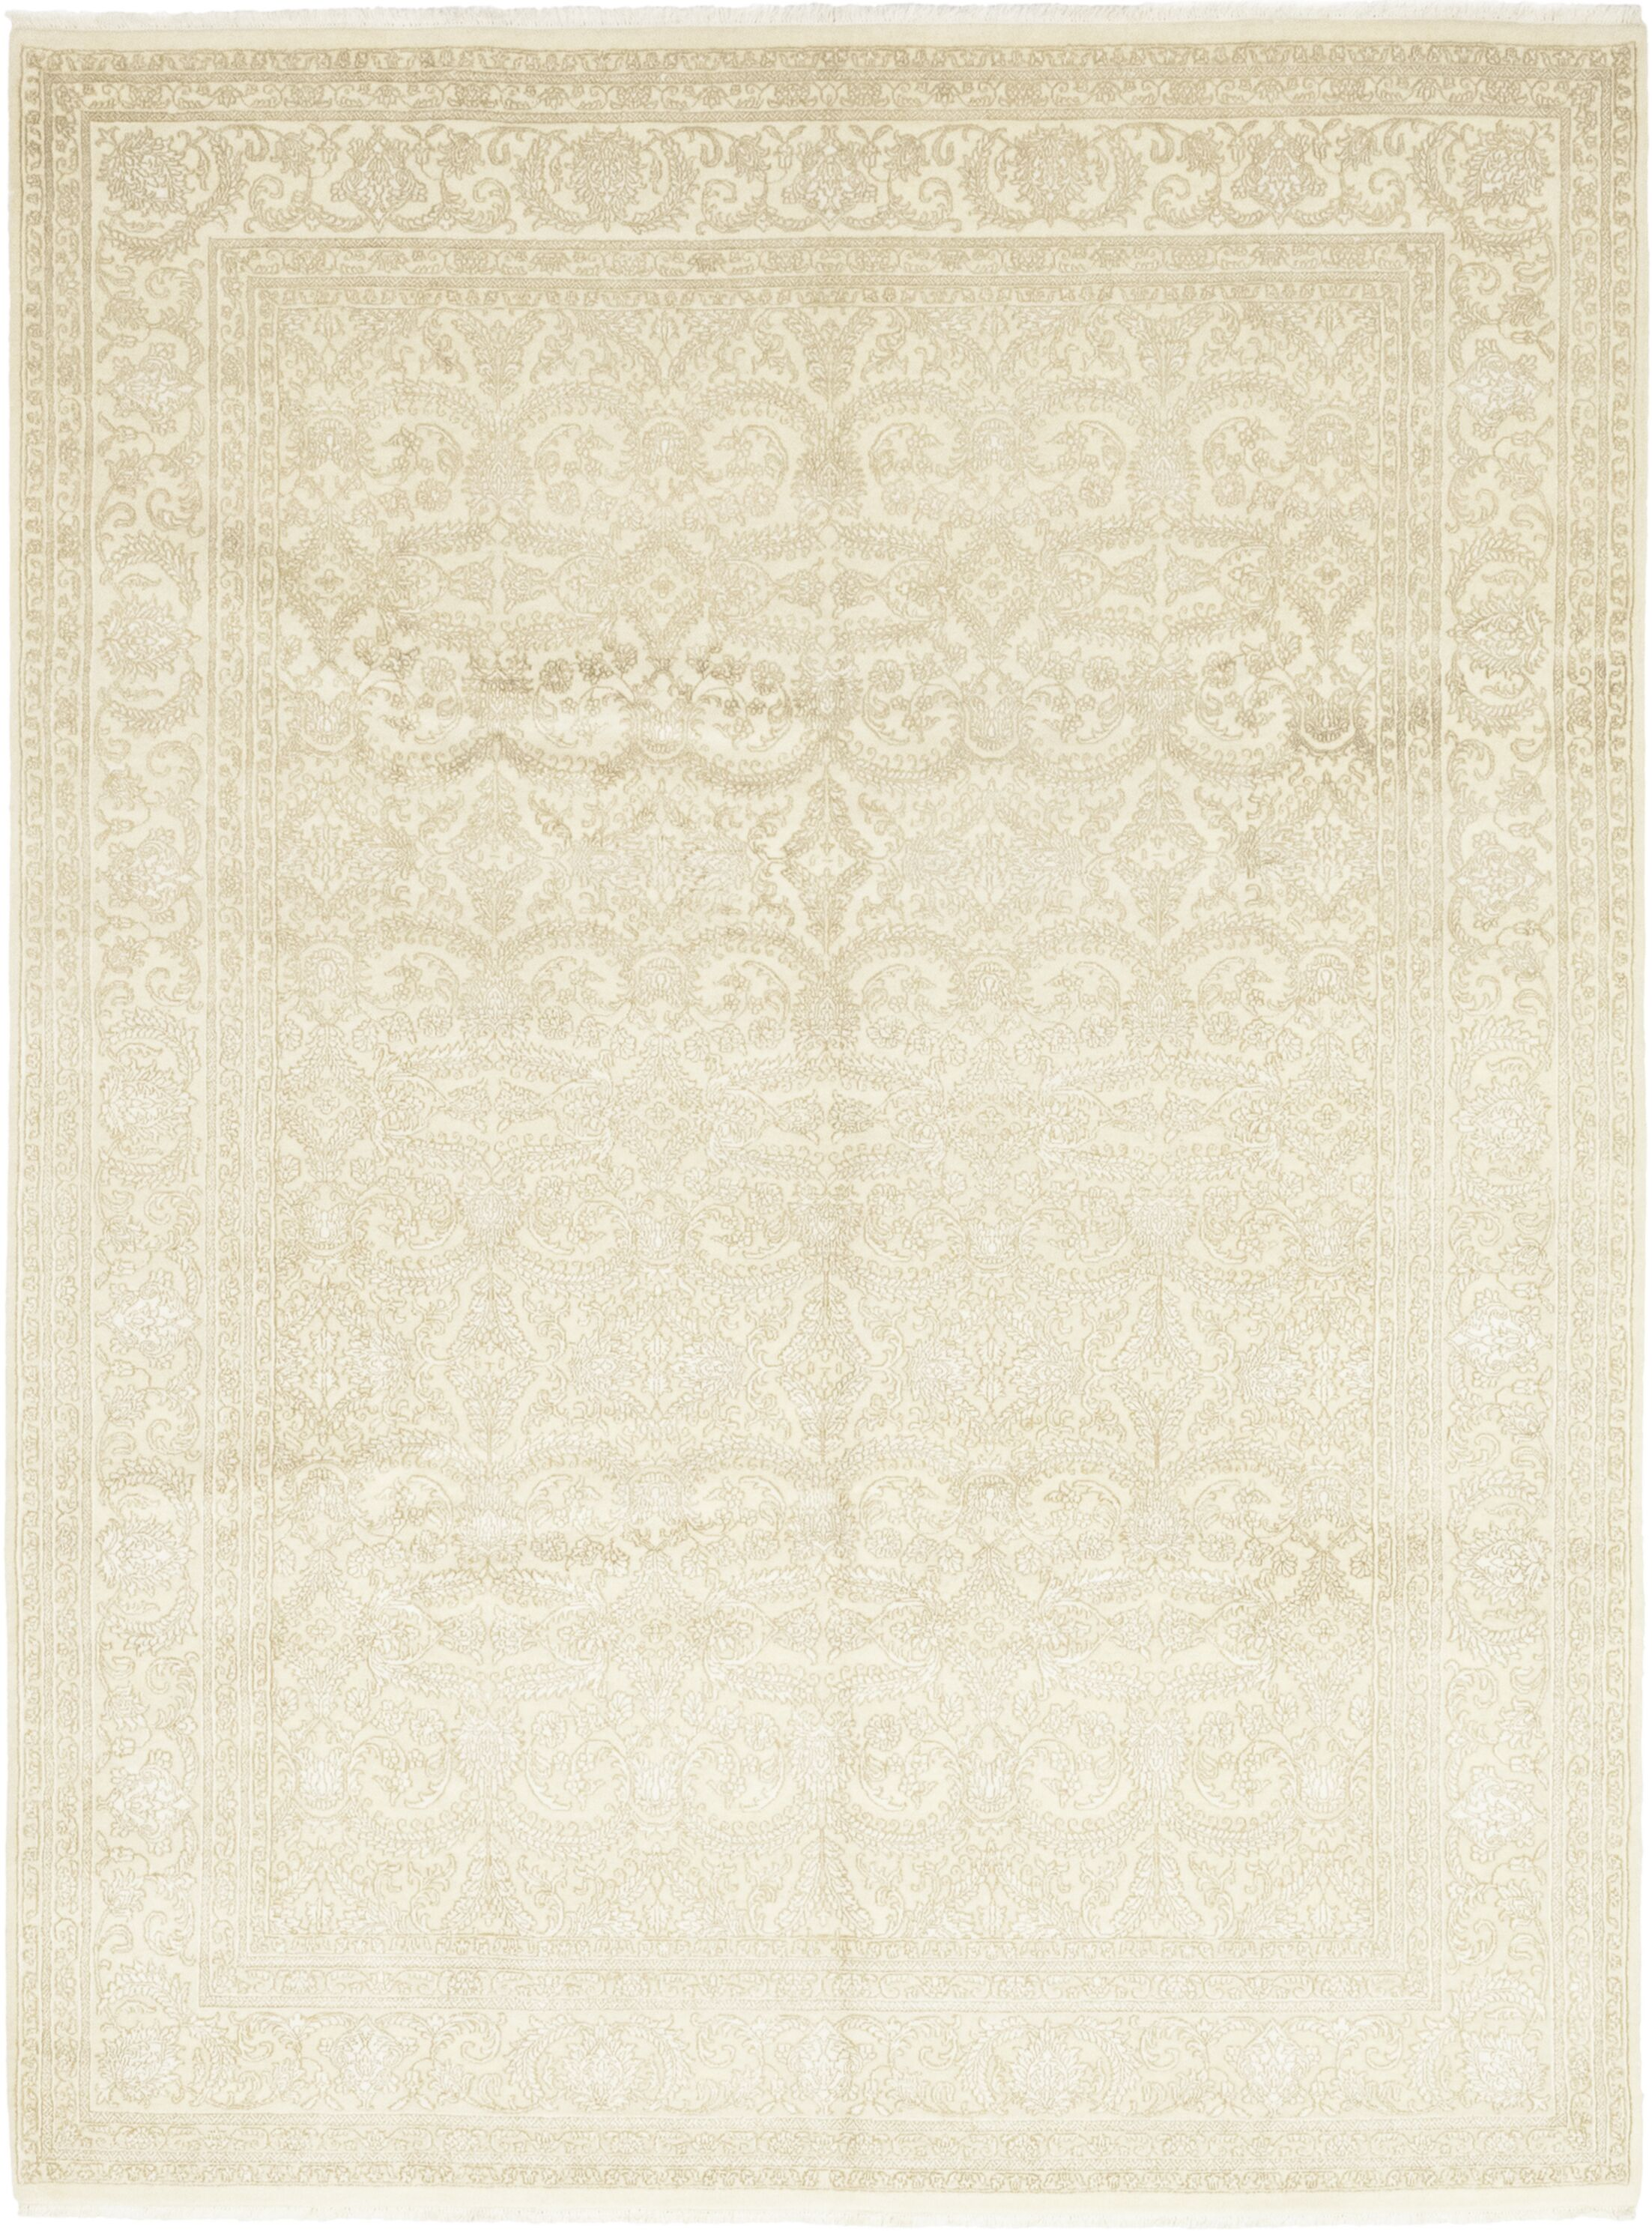 One-of-a-Kind Islemade Hand-Knotted Wool Beige Indoor Area Rug